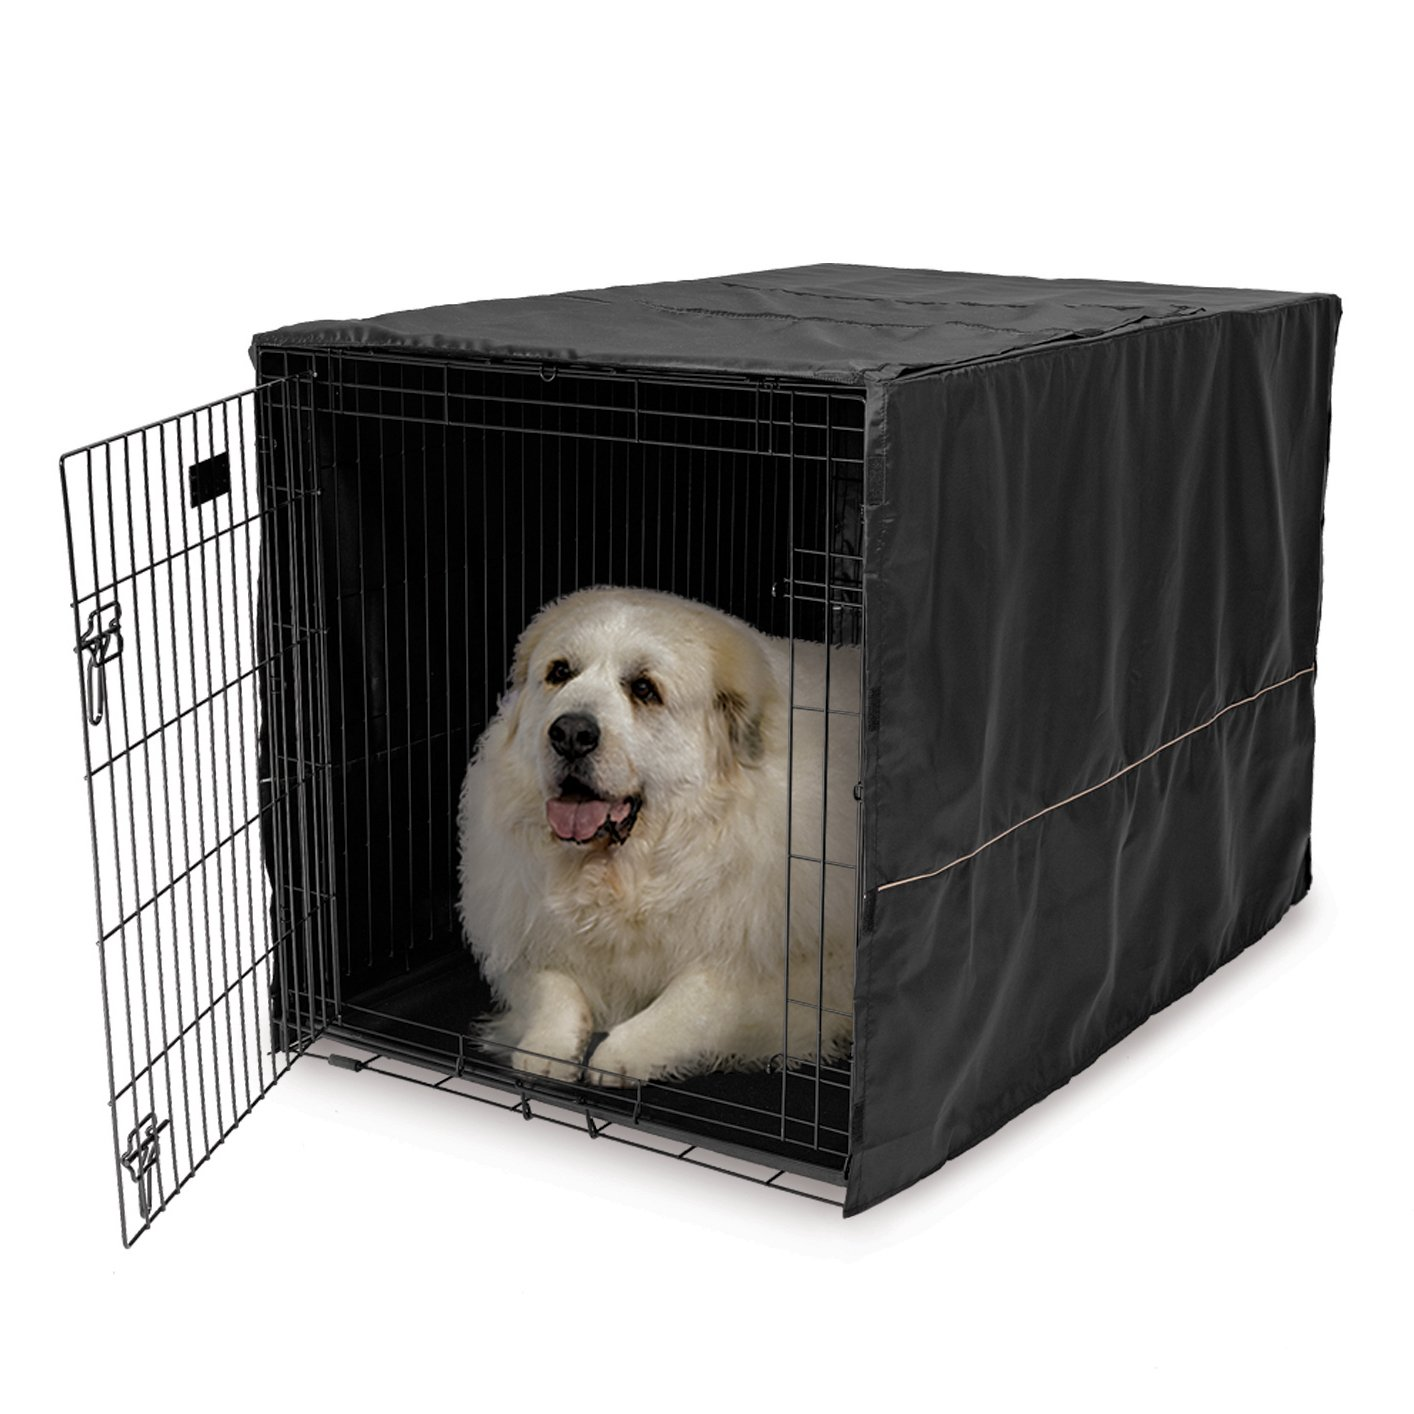 MidWest 48'' Dog Kennel Covers / Dog Crate Cover by MidWest Homes for Pets